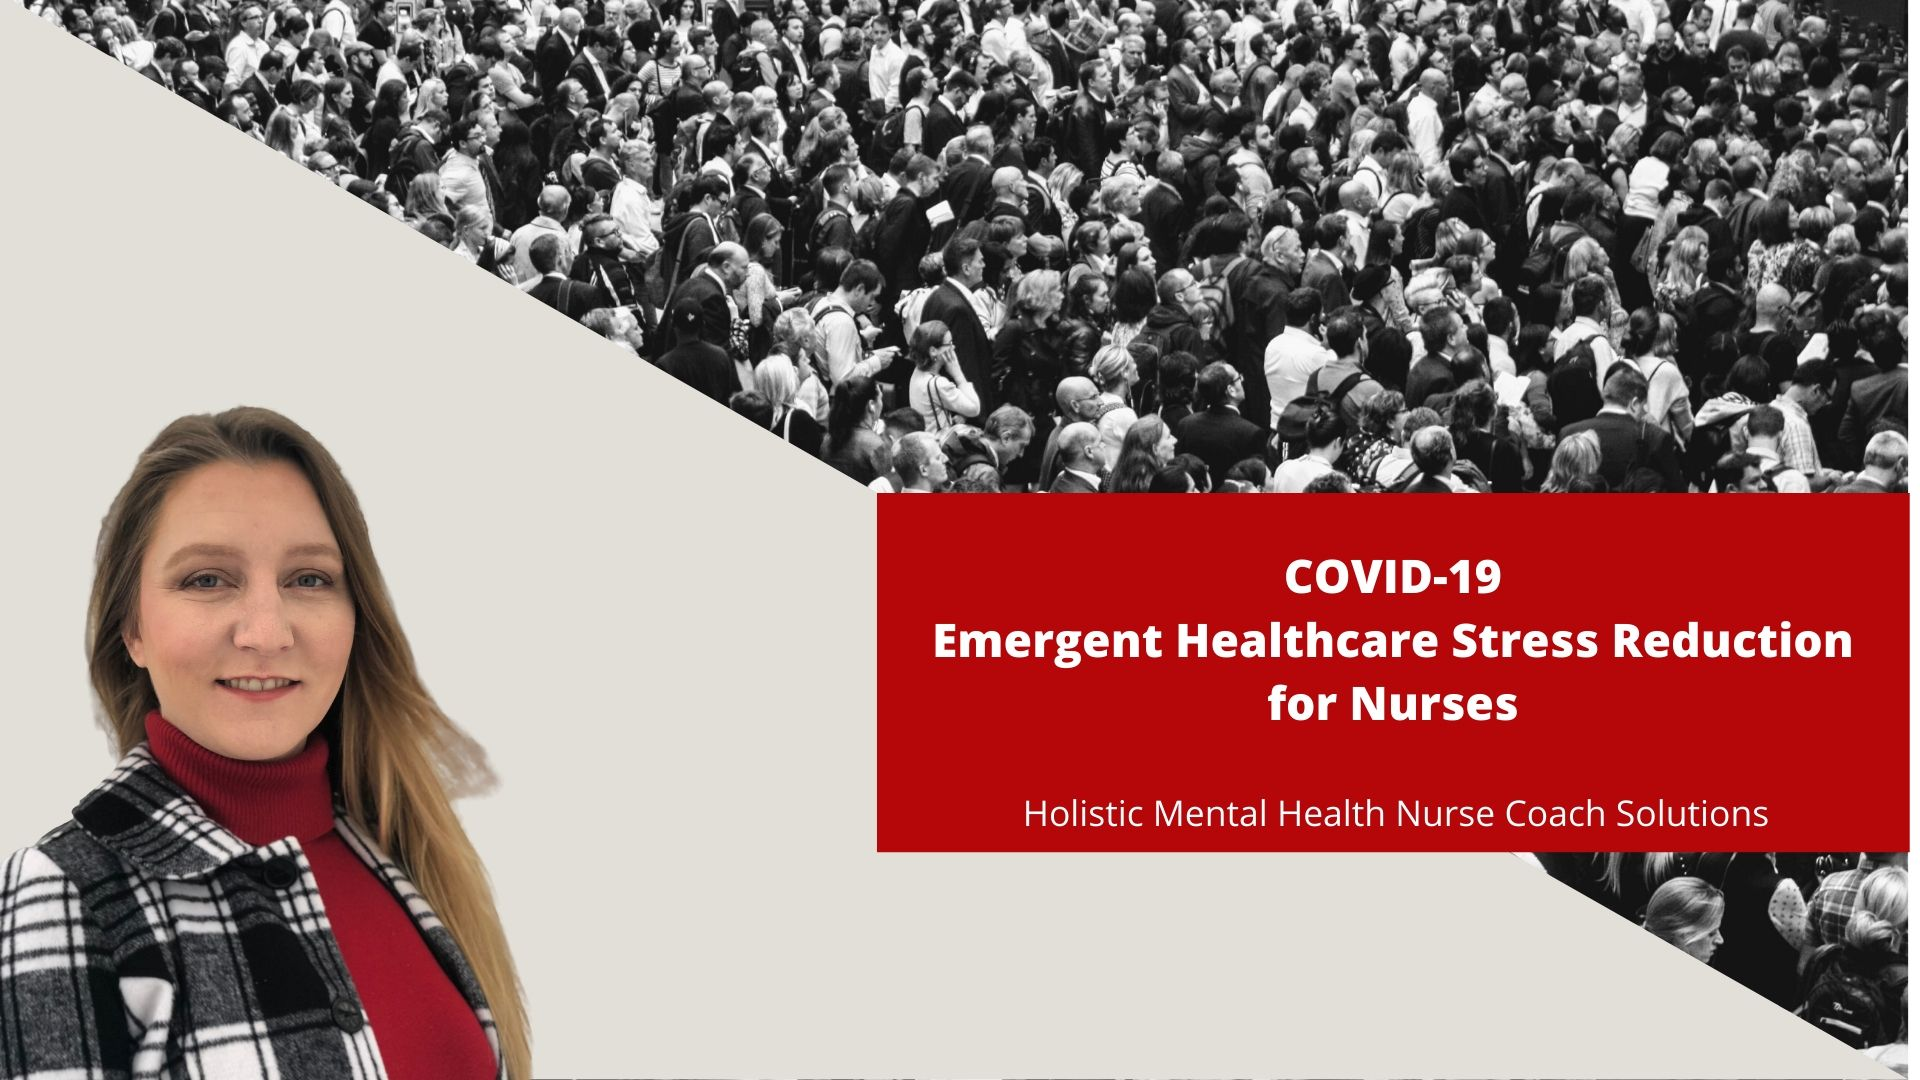 COVID-19 Emergent Healthcare Stress Reduction for Nurses